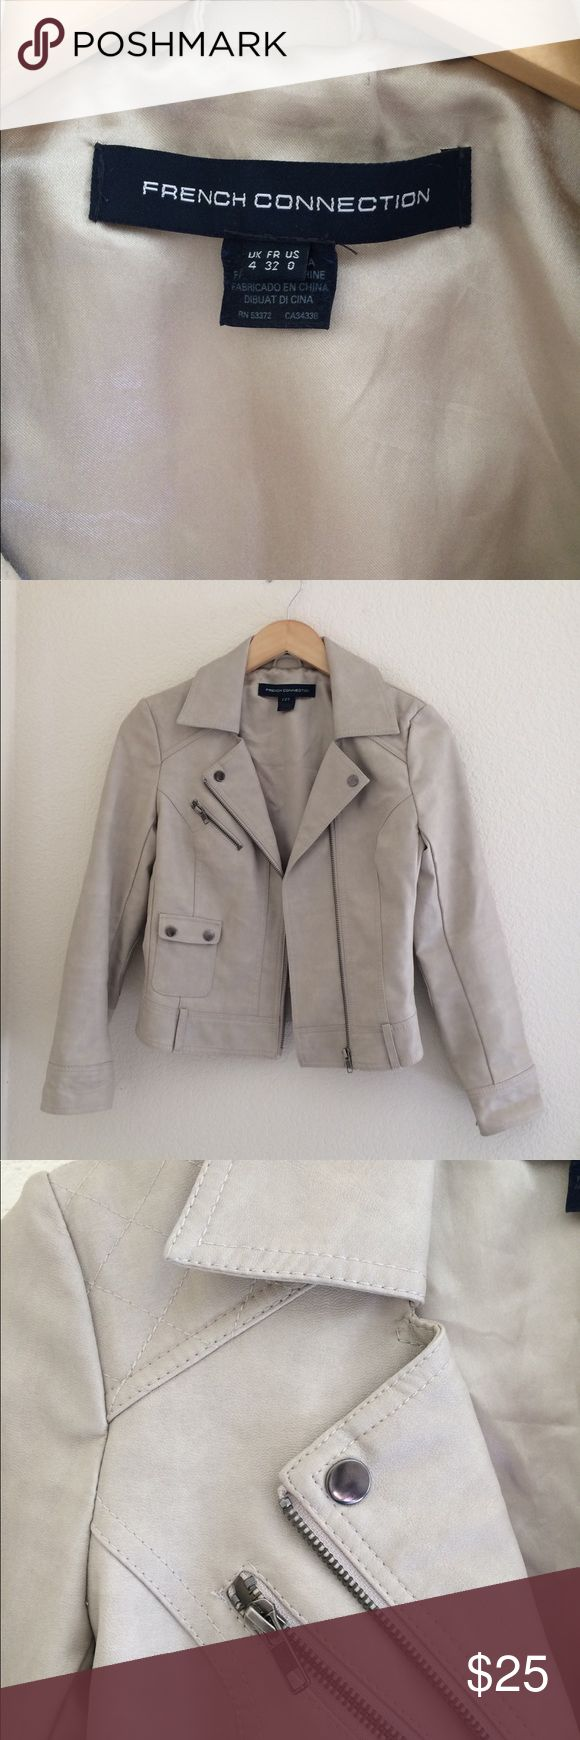 French Connection Moto Leather Jacket From French Connection leather jacket. It's in great condition no stain no tear. French Connection Jackets & Coats Utility Jackets